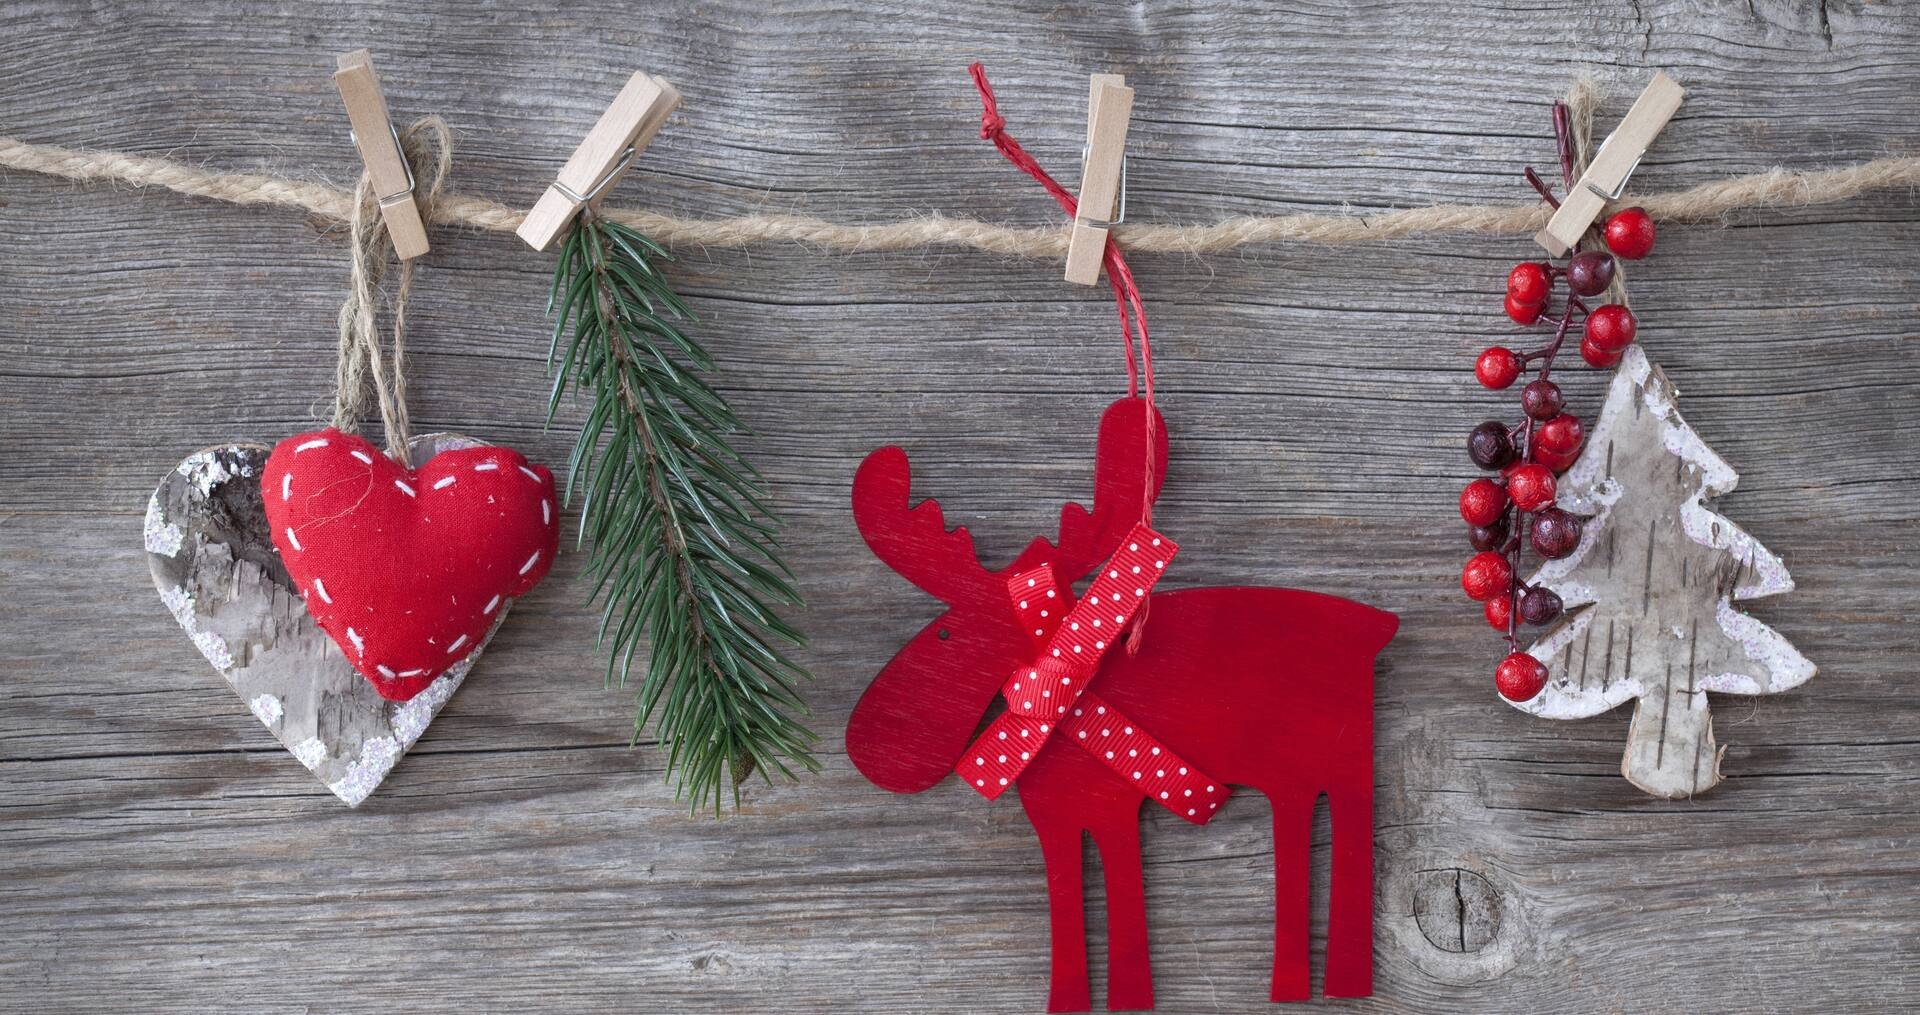 DECK THE HALLS: Christmas hacks for your home